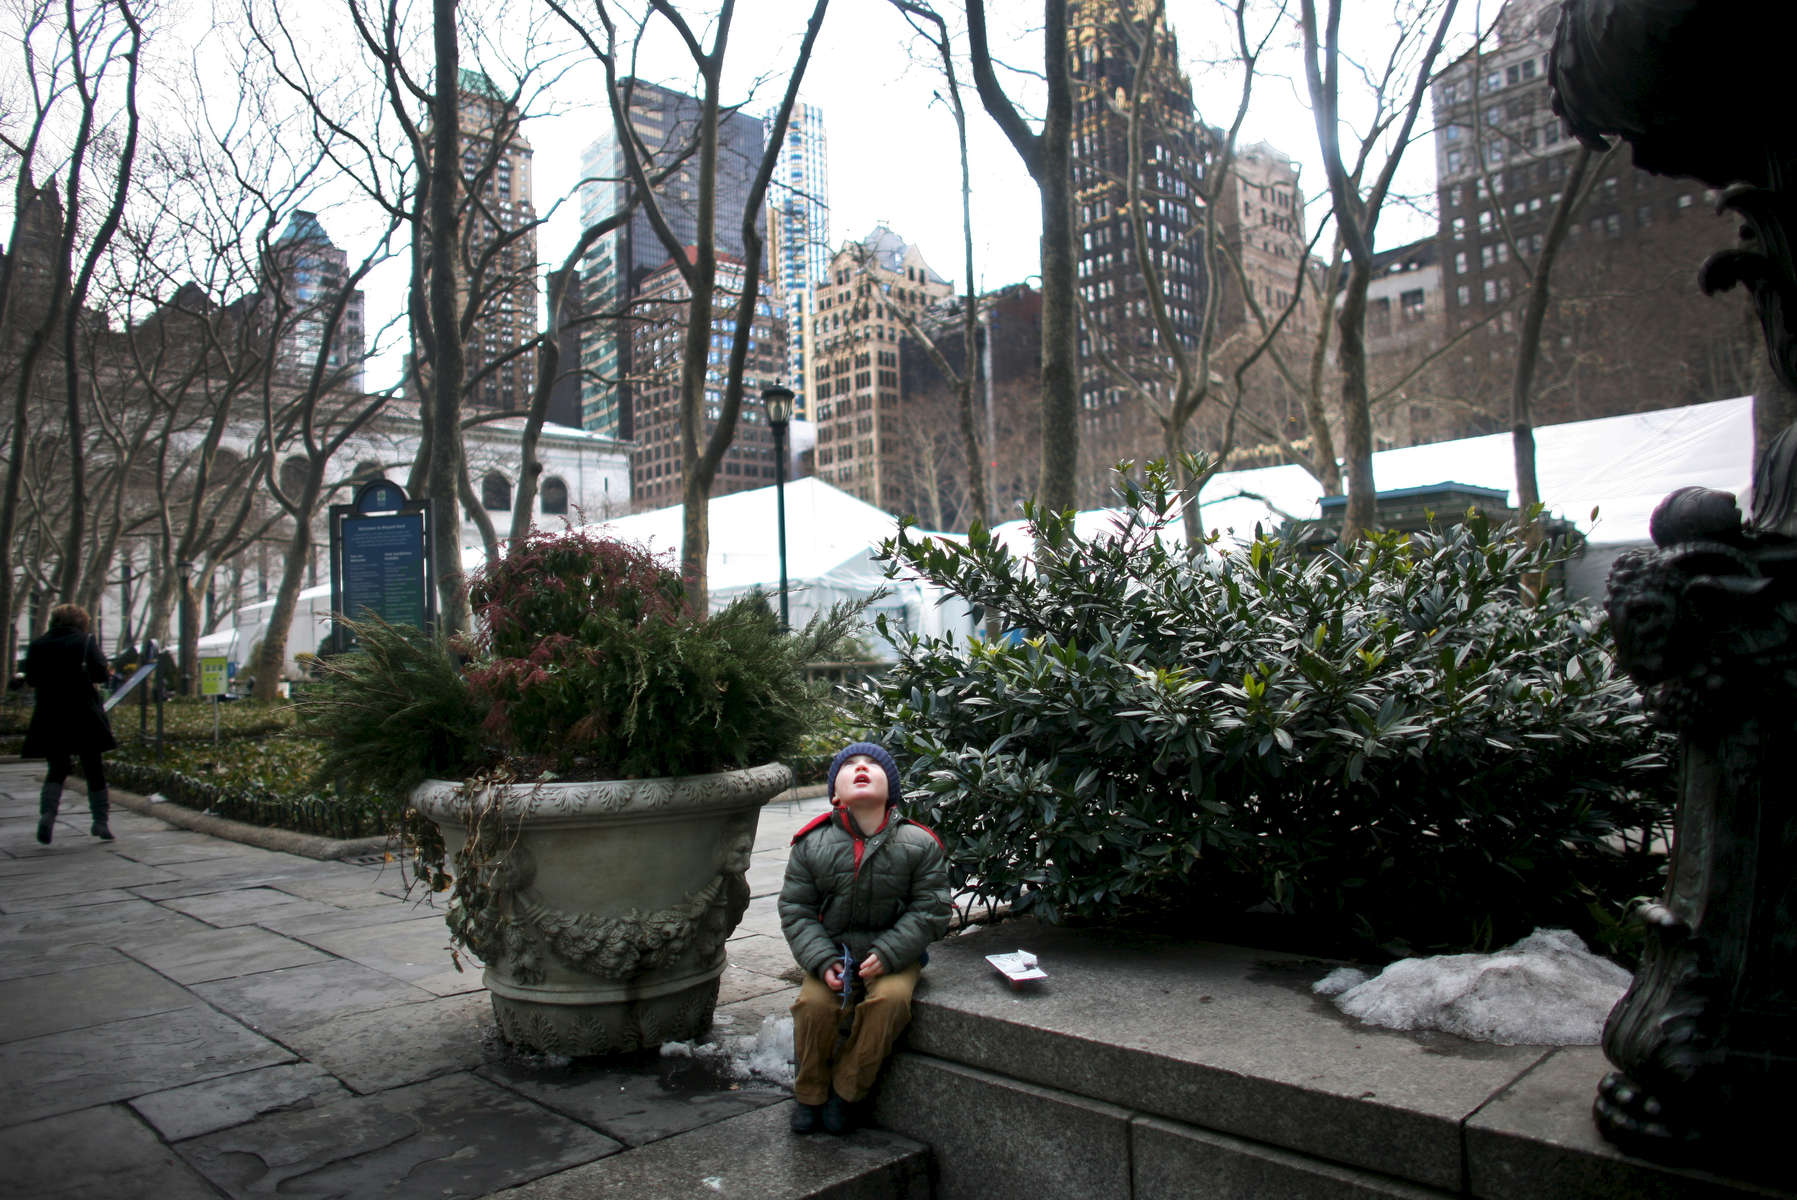 A little boy stares at the trees above Bryant Park on Thursday, February 18, 2010, the last day of Fall 2010 Fashion Week in Manhattan, New York. (For The New York Times)